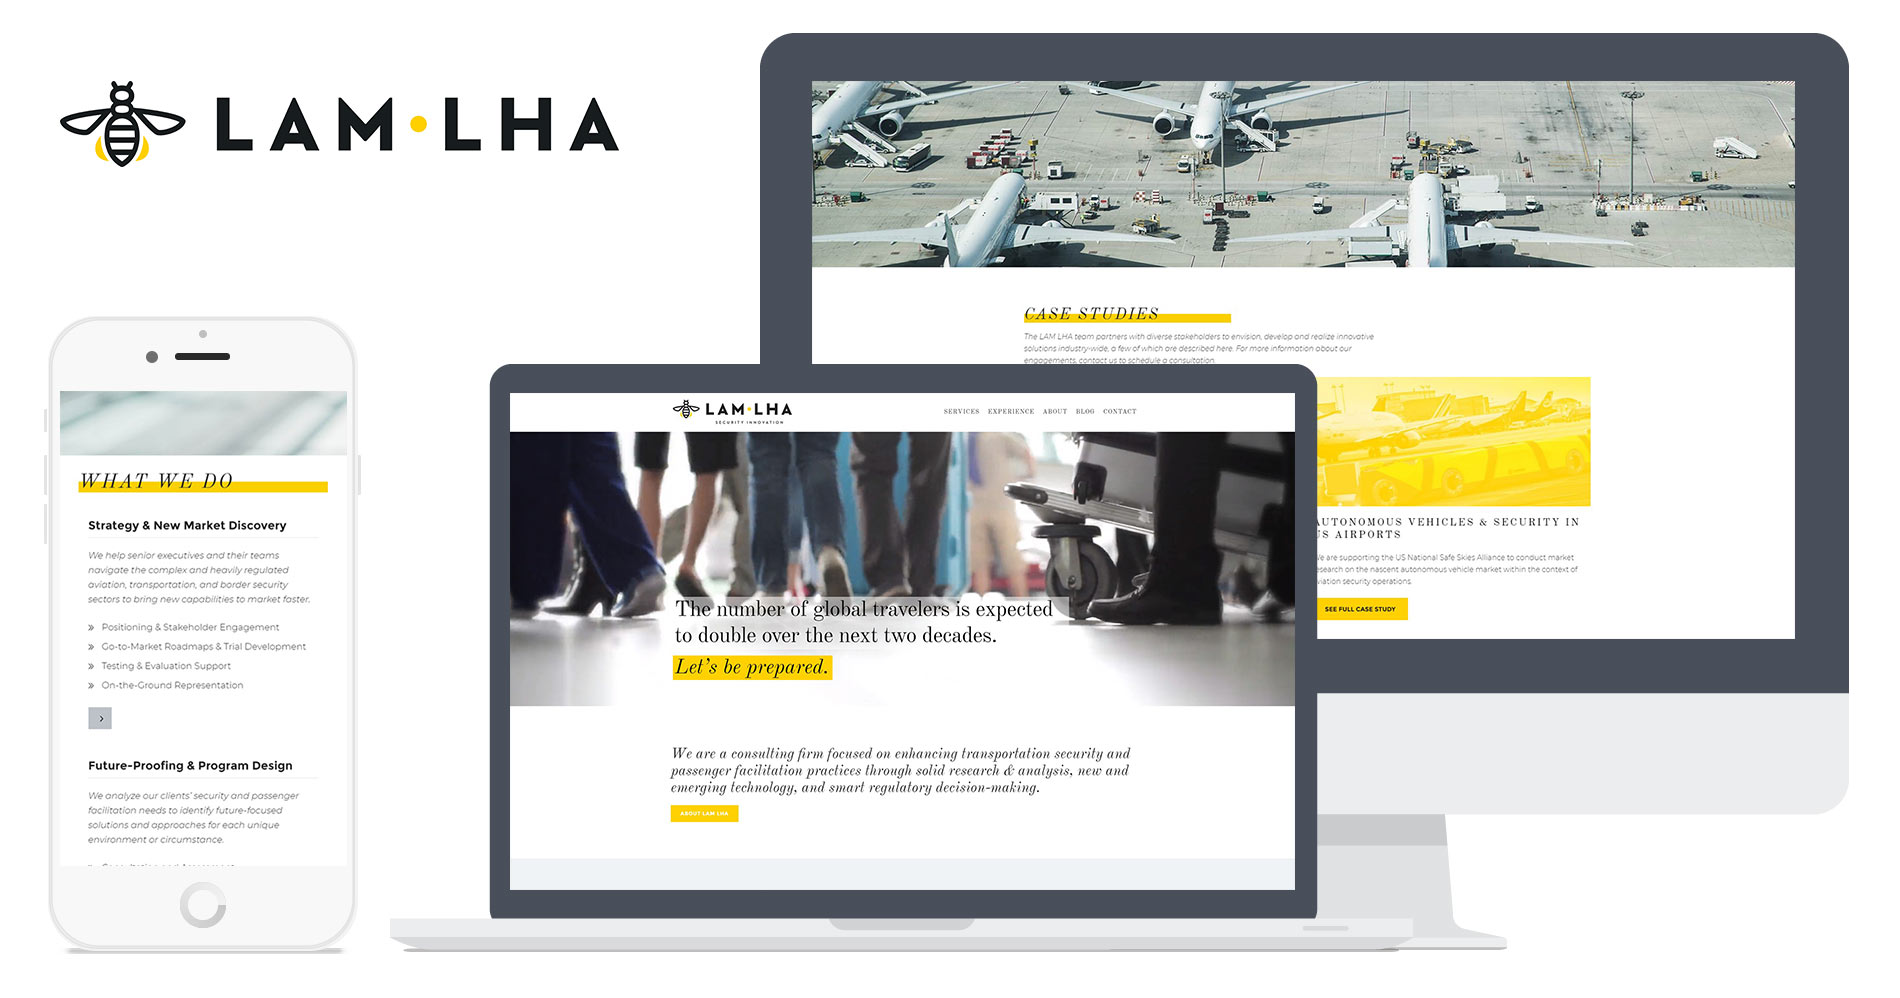 lam lha website design